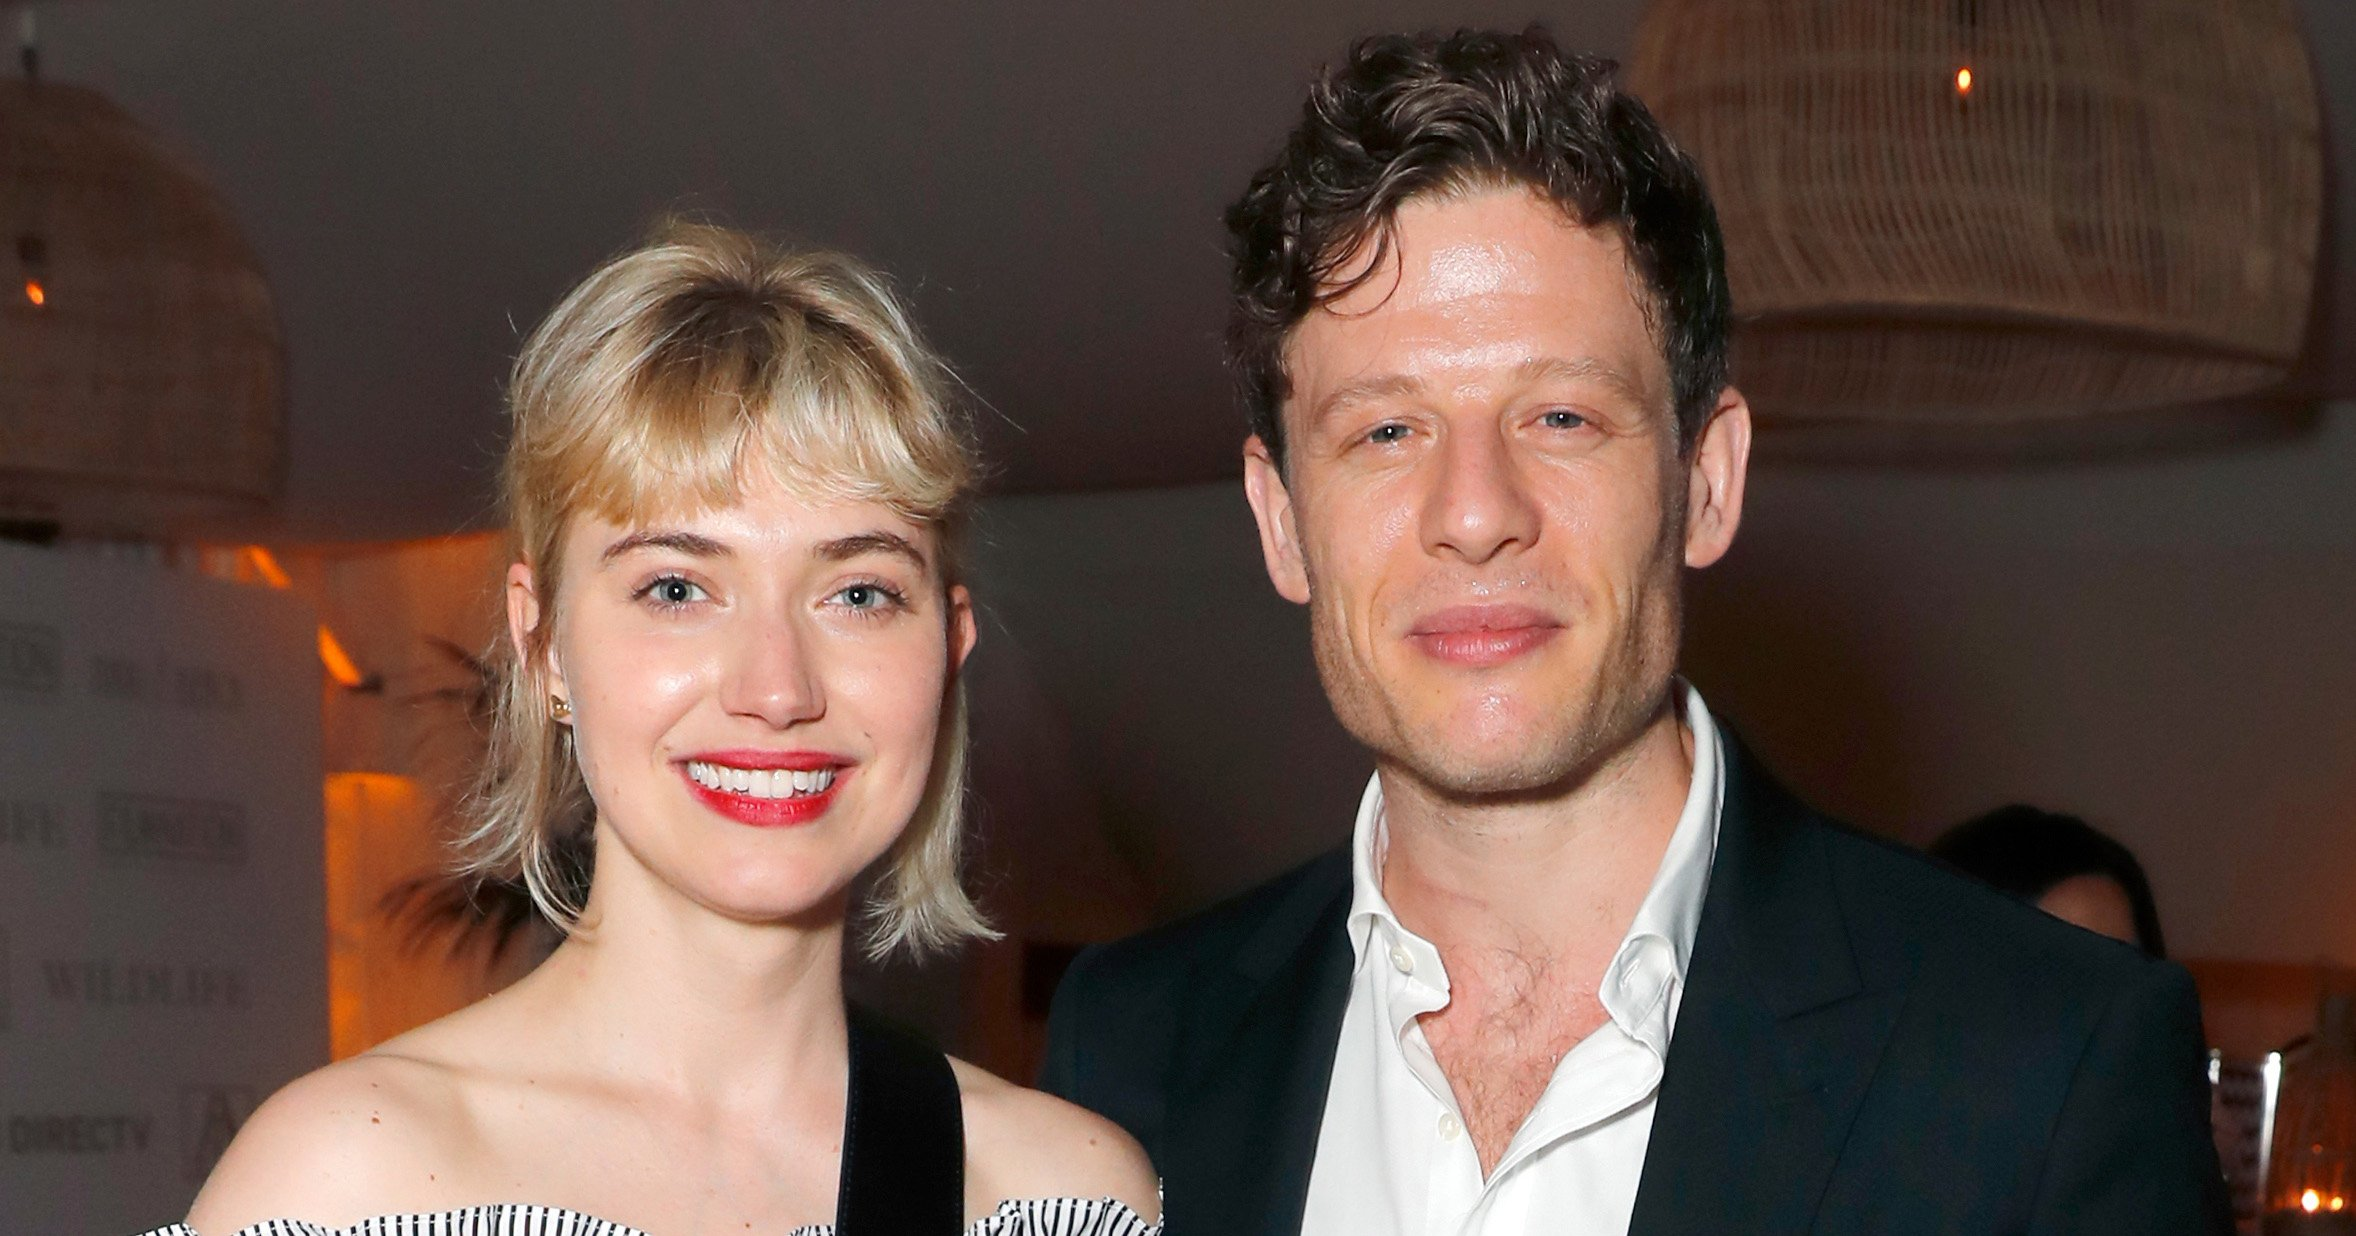 McMafia's James Norton only has eyes for new girlfriend Imogen Poots as pair make public debut